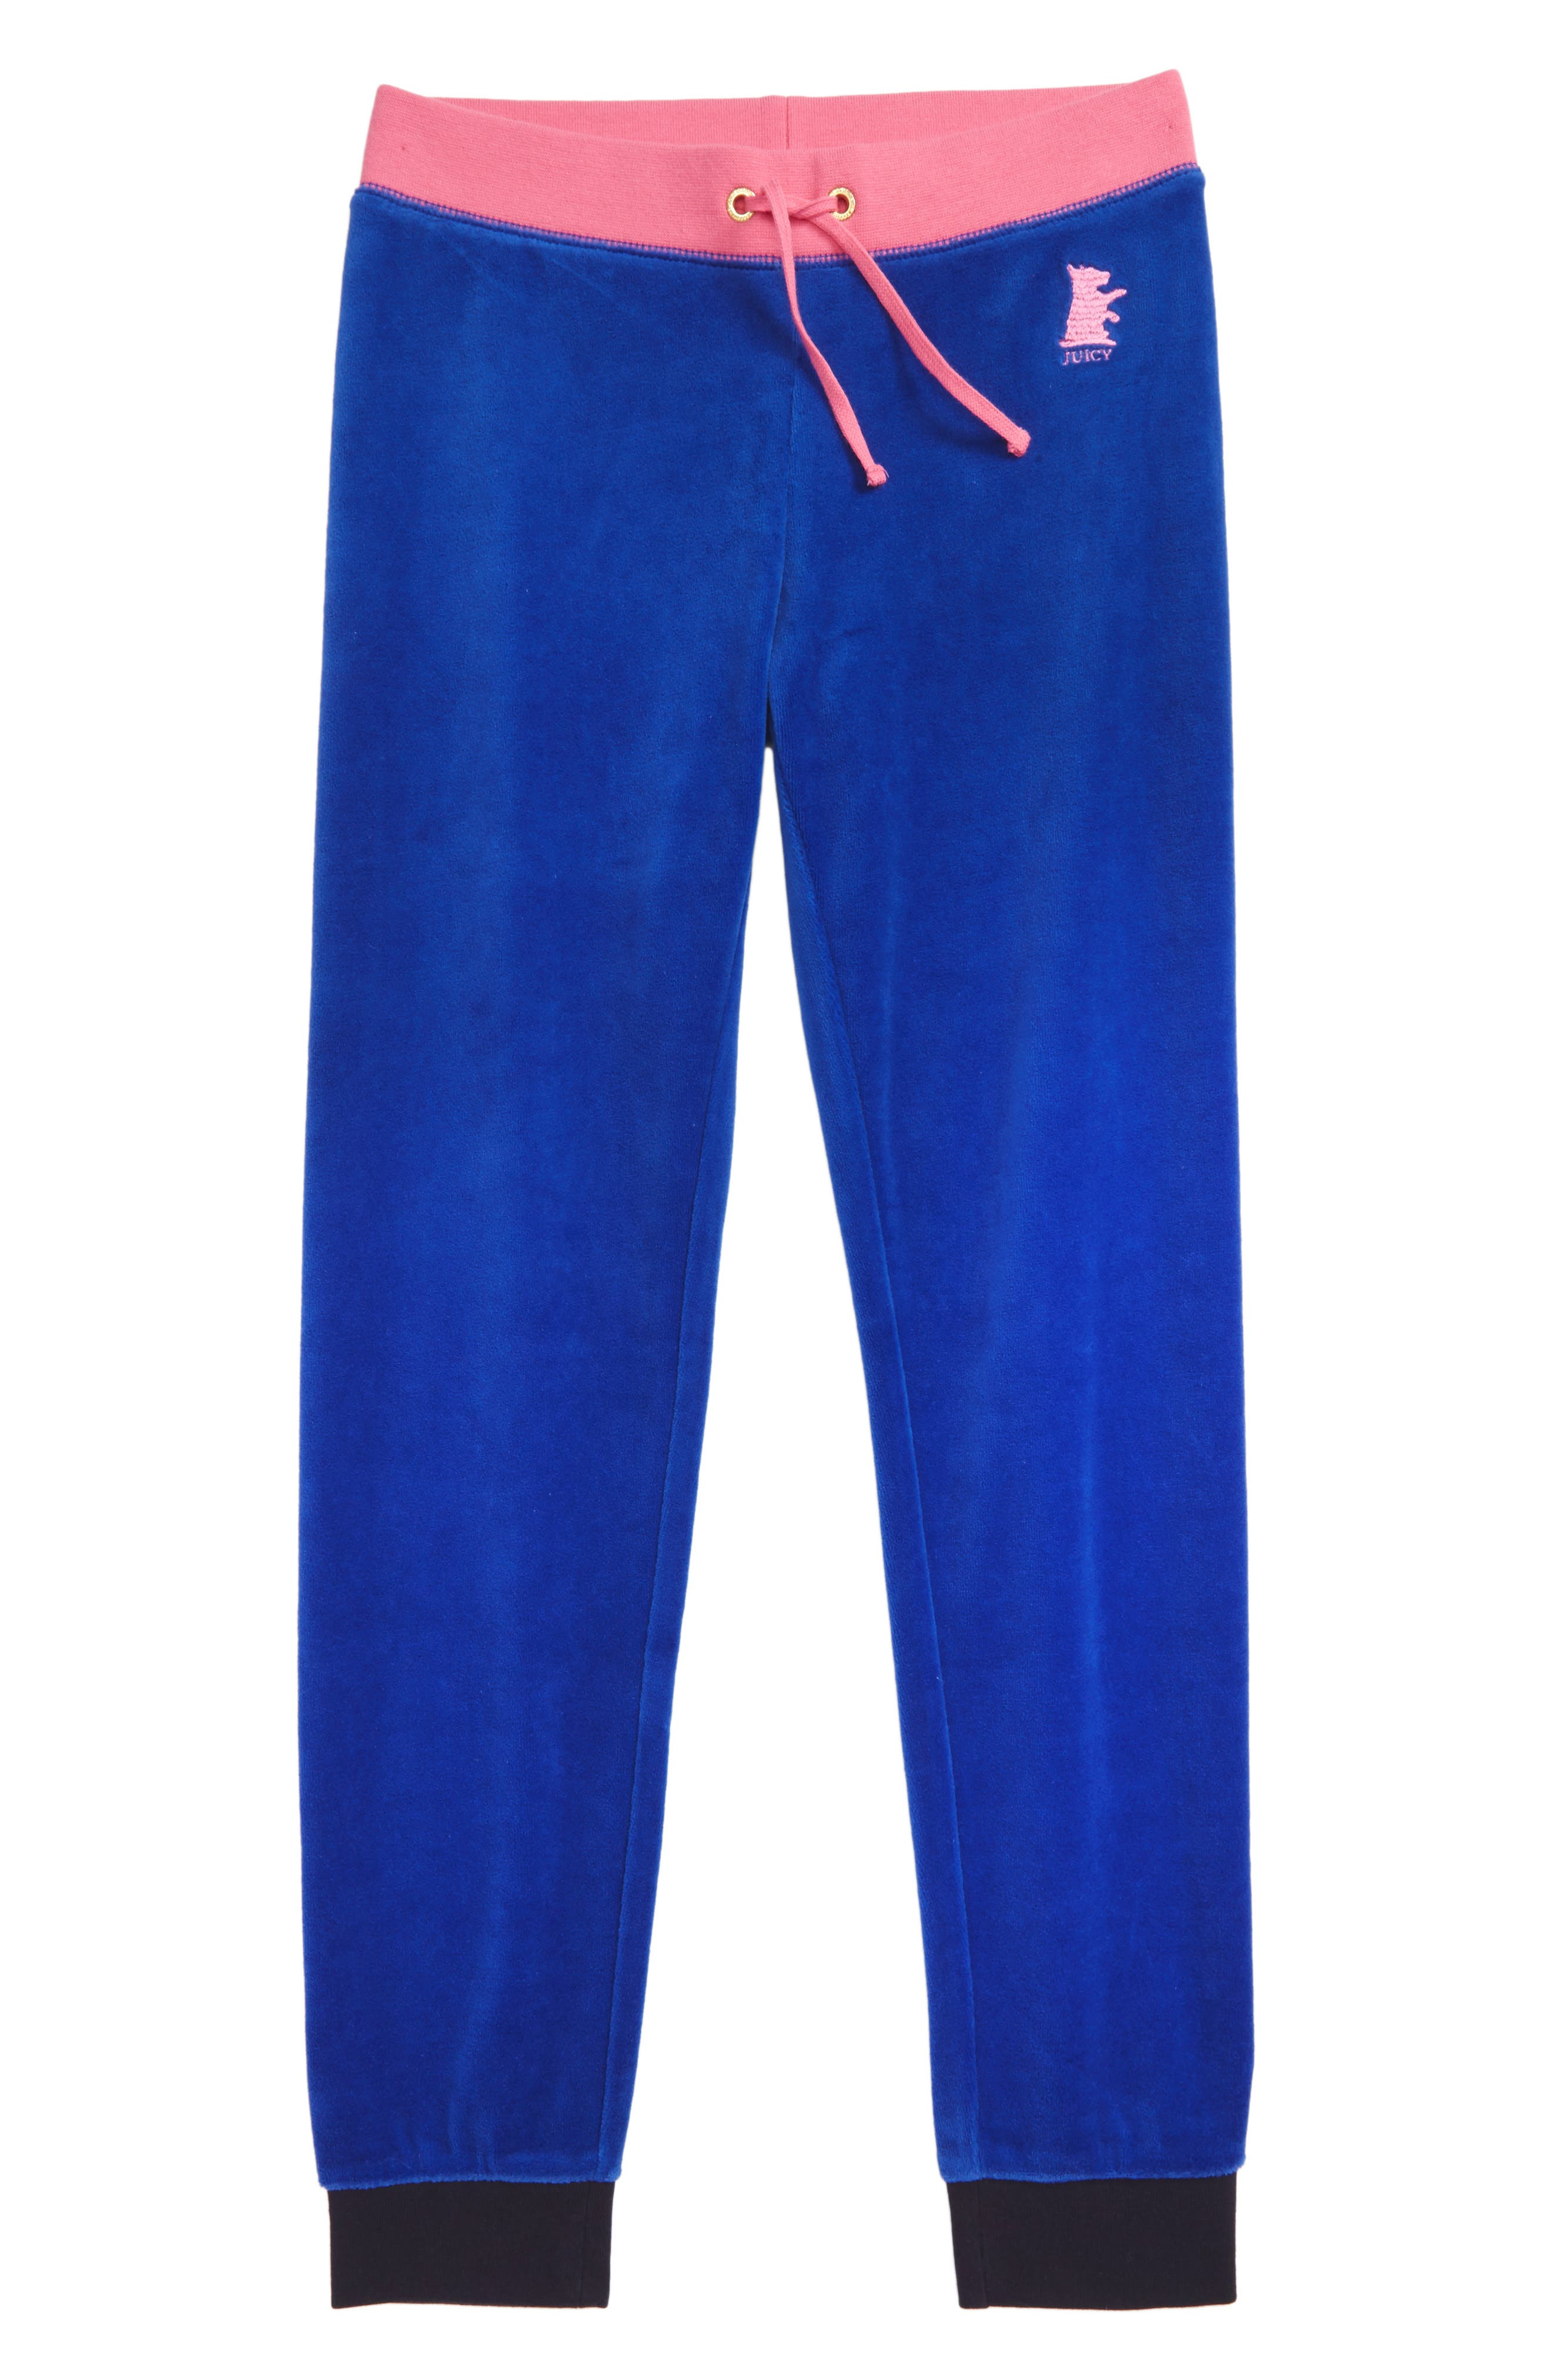 Alternate Image 1 Selected - Juicy Couture Zuma Velour Pants (Toddler Girls & Little Girls)